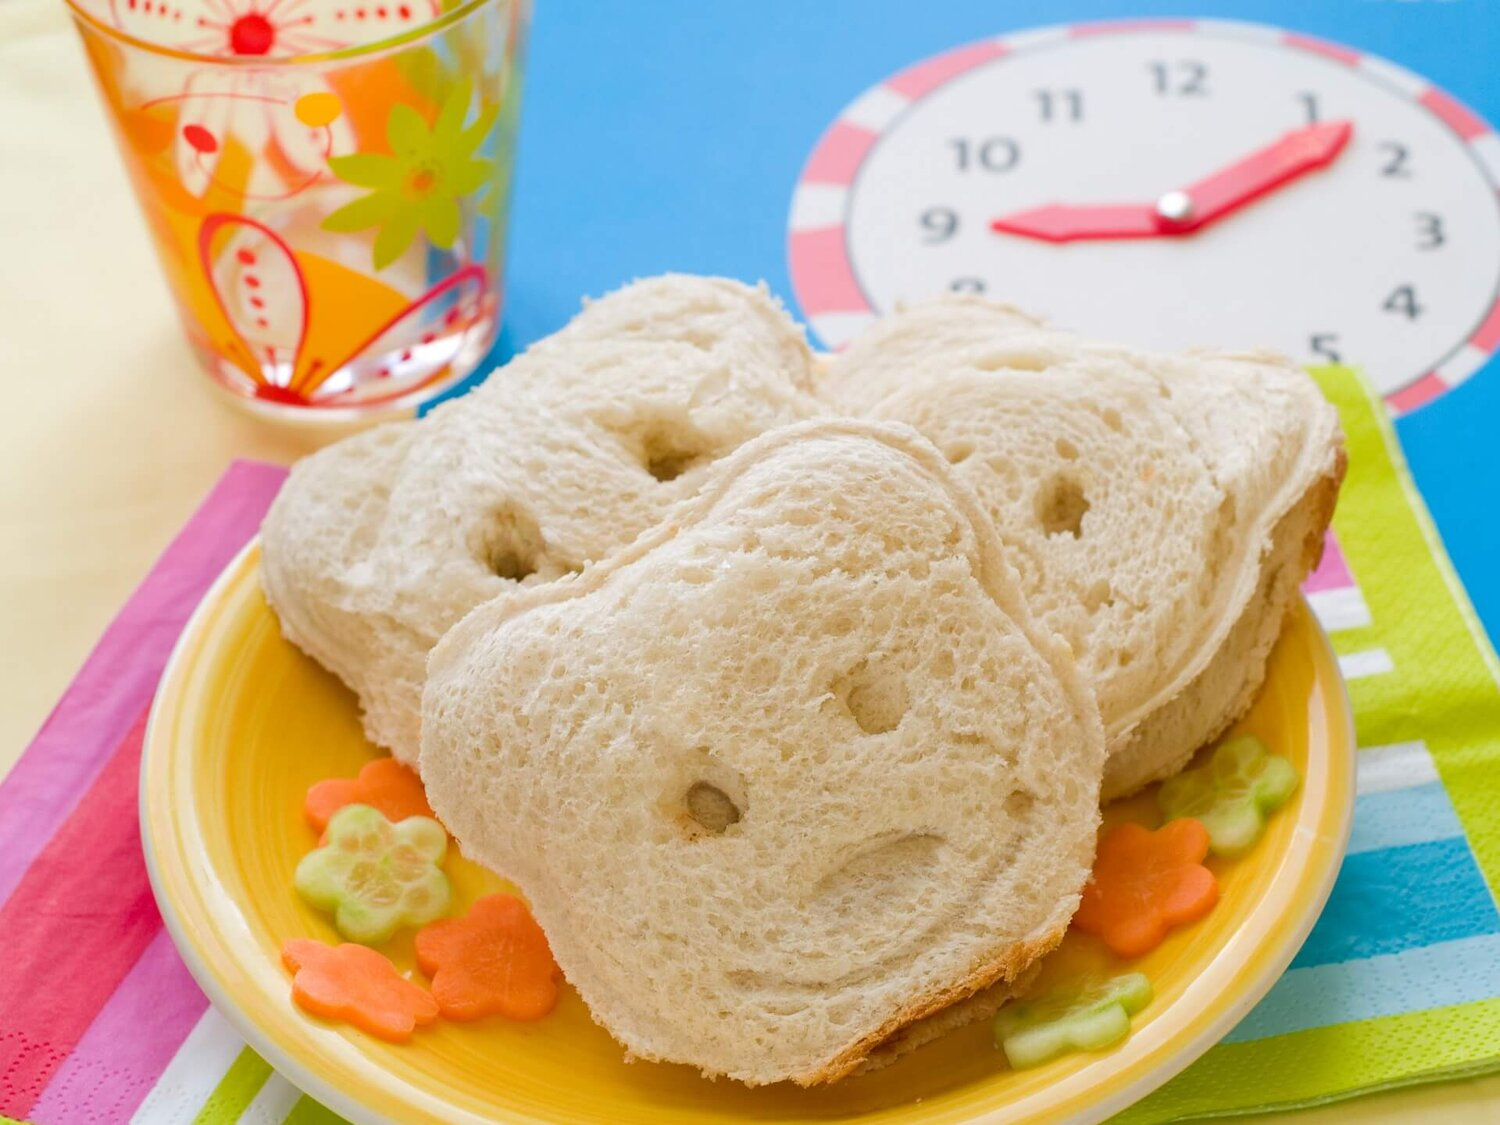 Baby Toddler Lunch Ideas 20 Different Sandwiches Weaning Fussy Eating The Children S Nutritionist